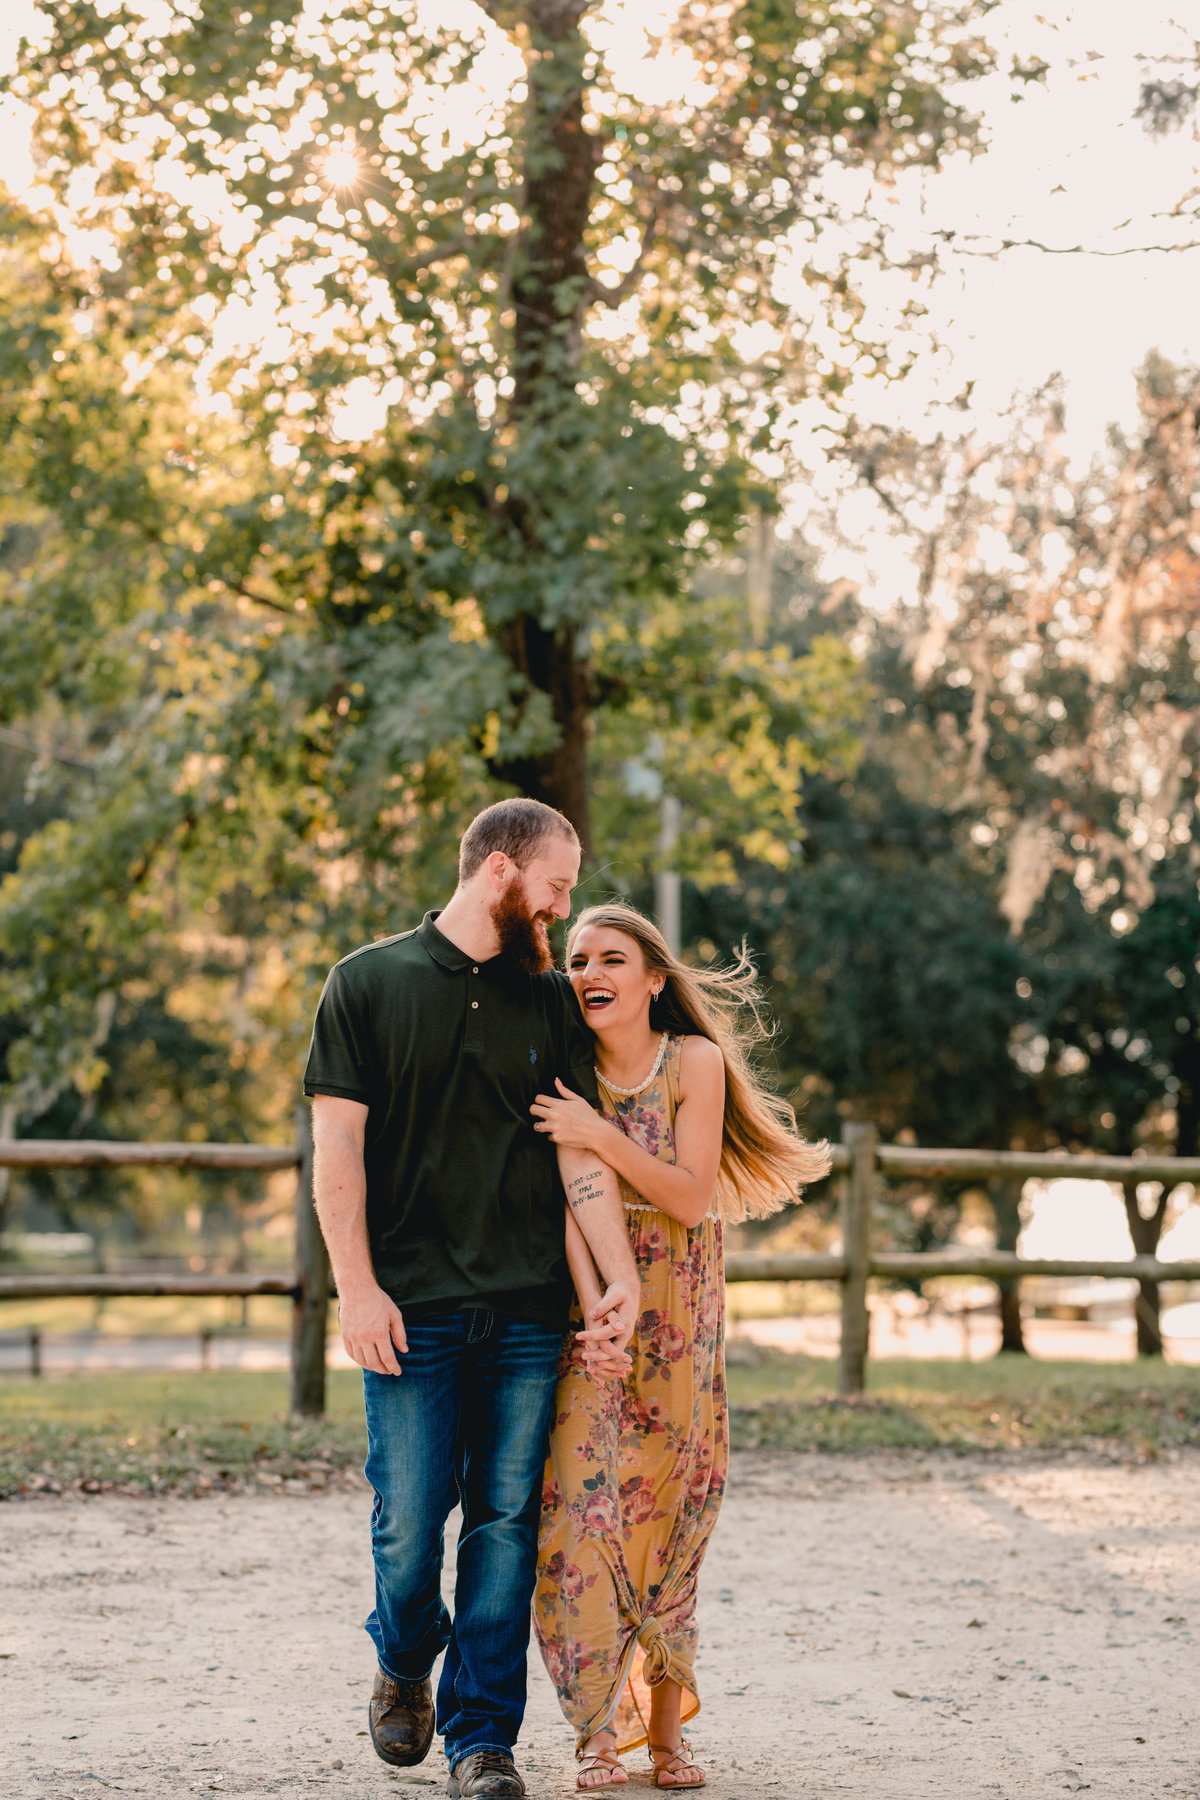 Natural light photographer specializing in couples and weddings in north florida